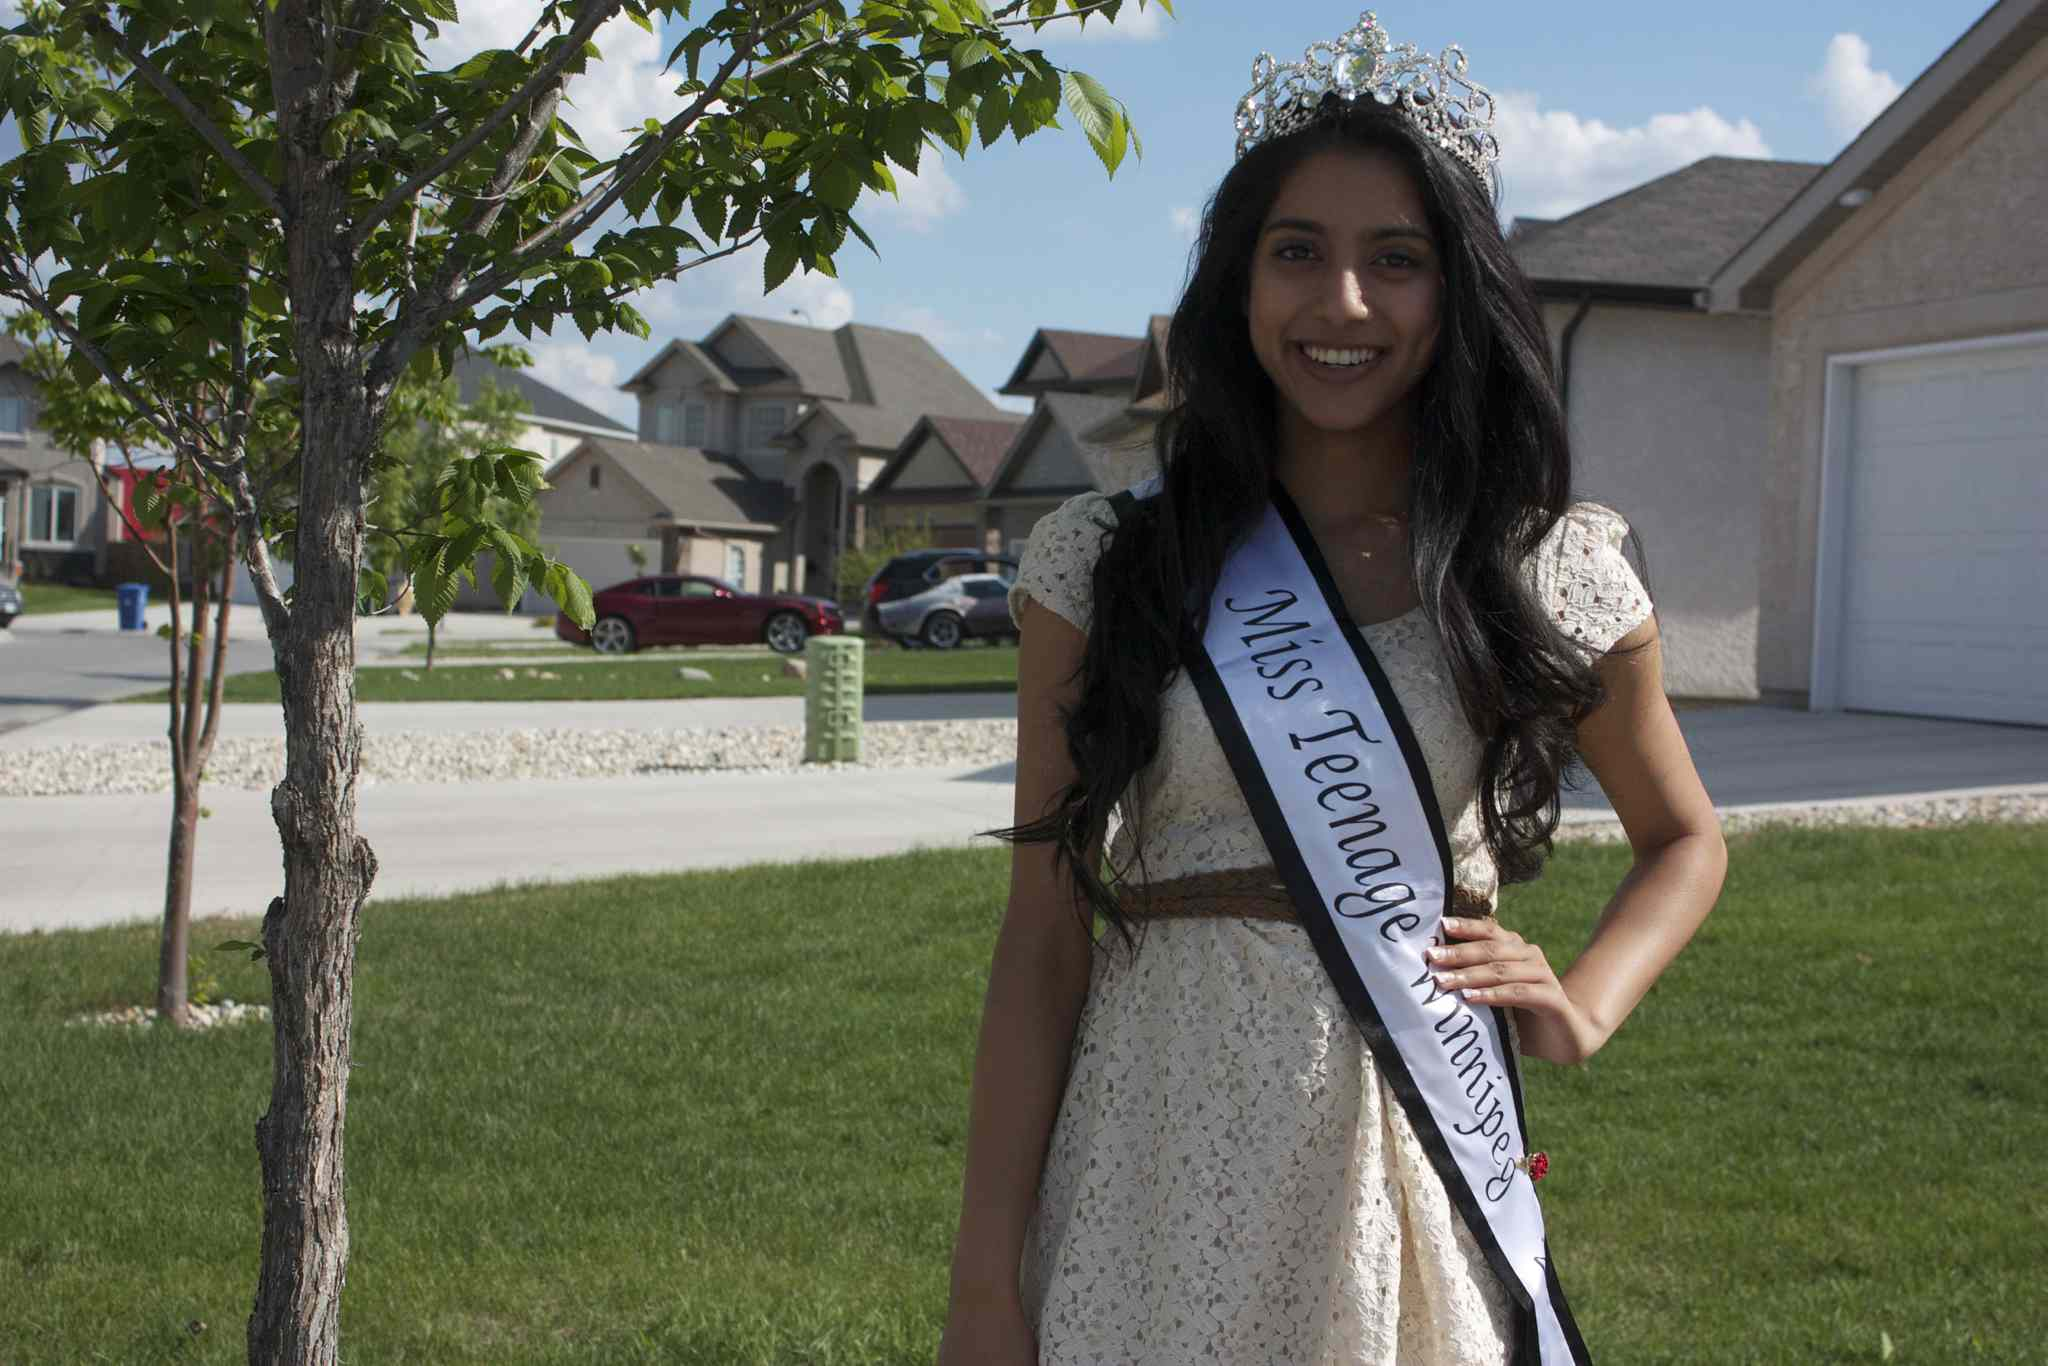 Miss Teenage Winnipeg 2014 winner Tanya Sagar will compete on the national stage in Toronto next month.